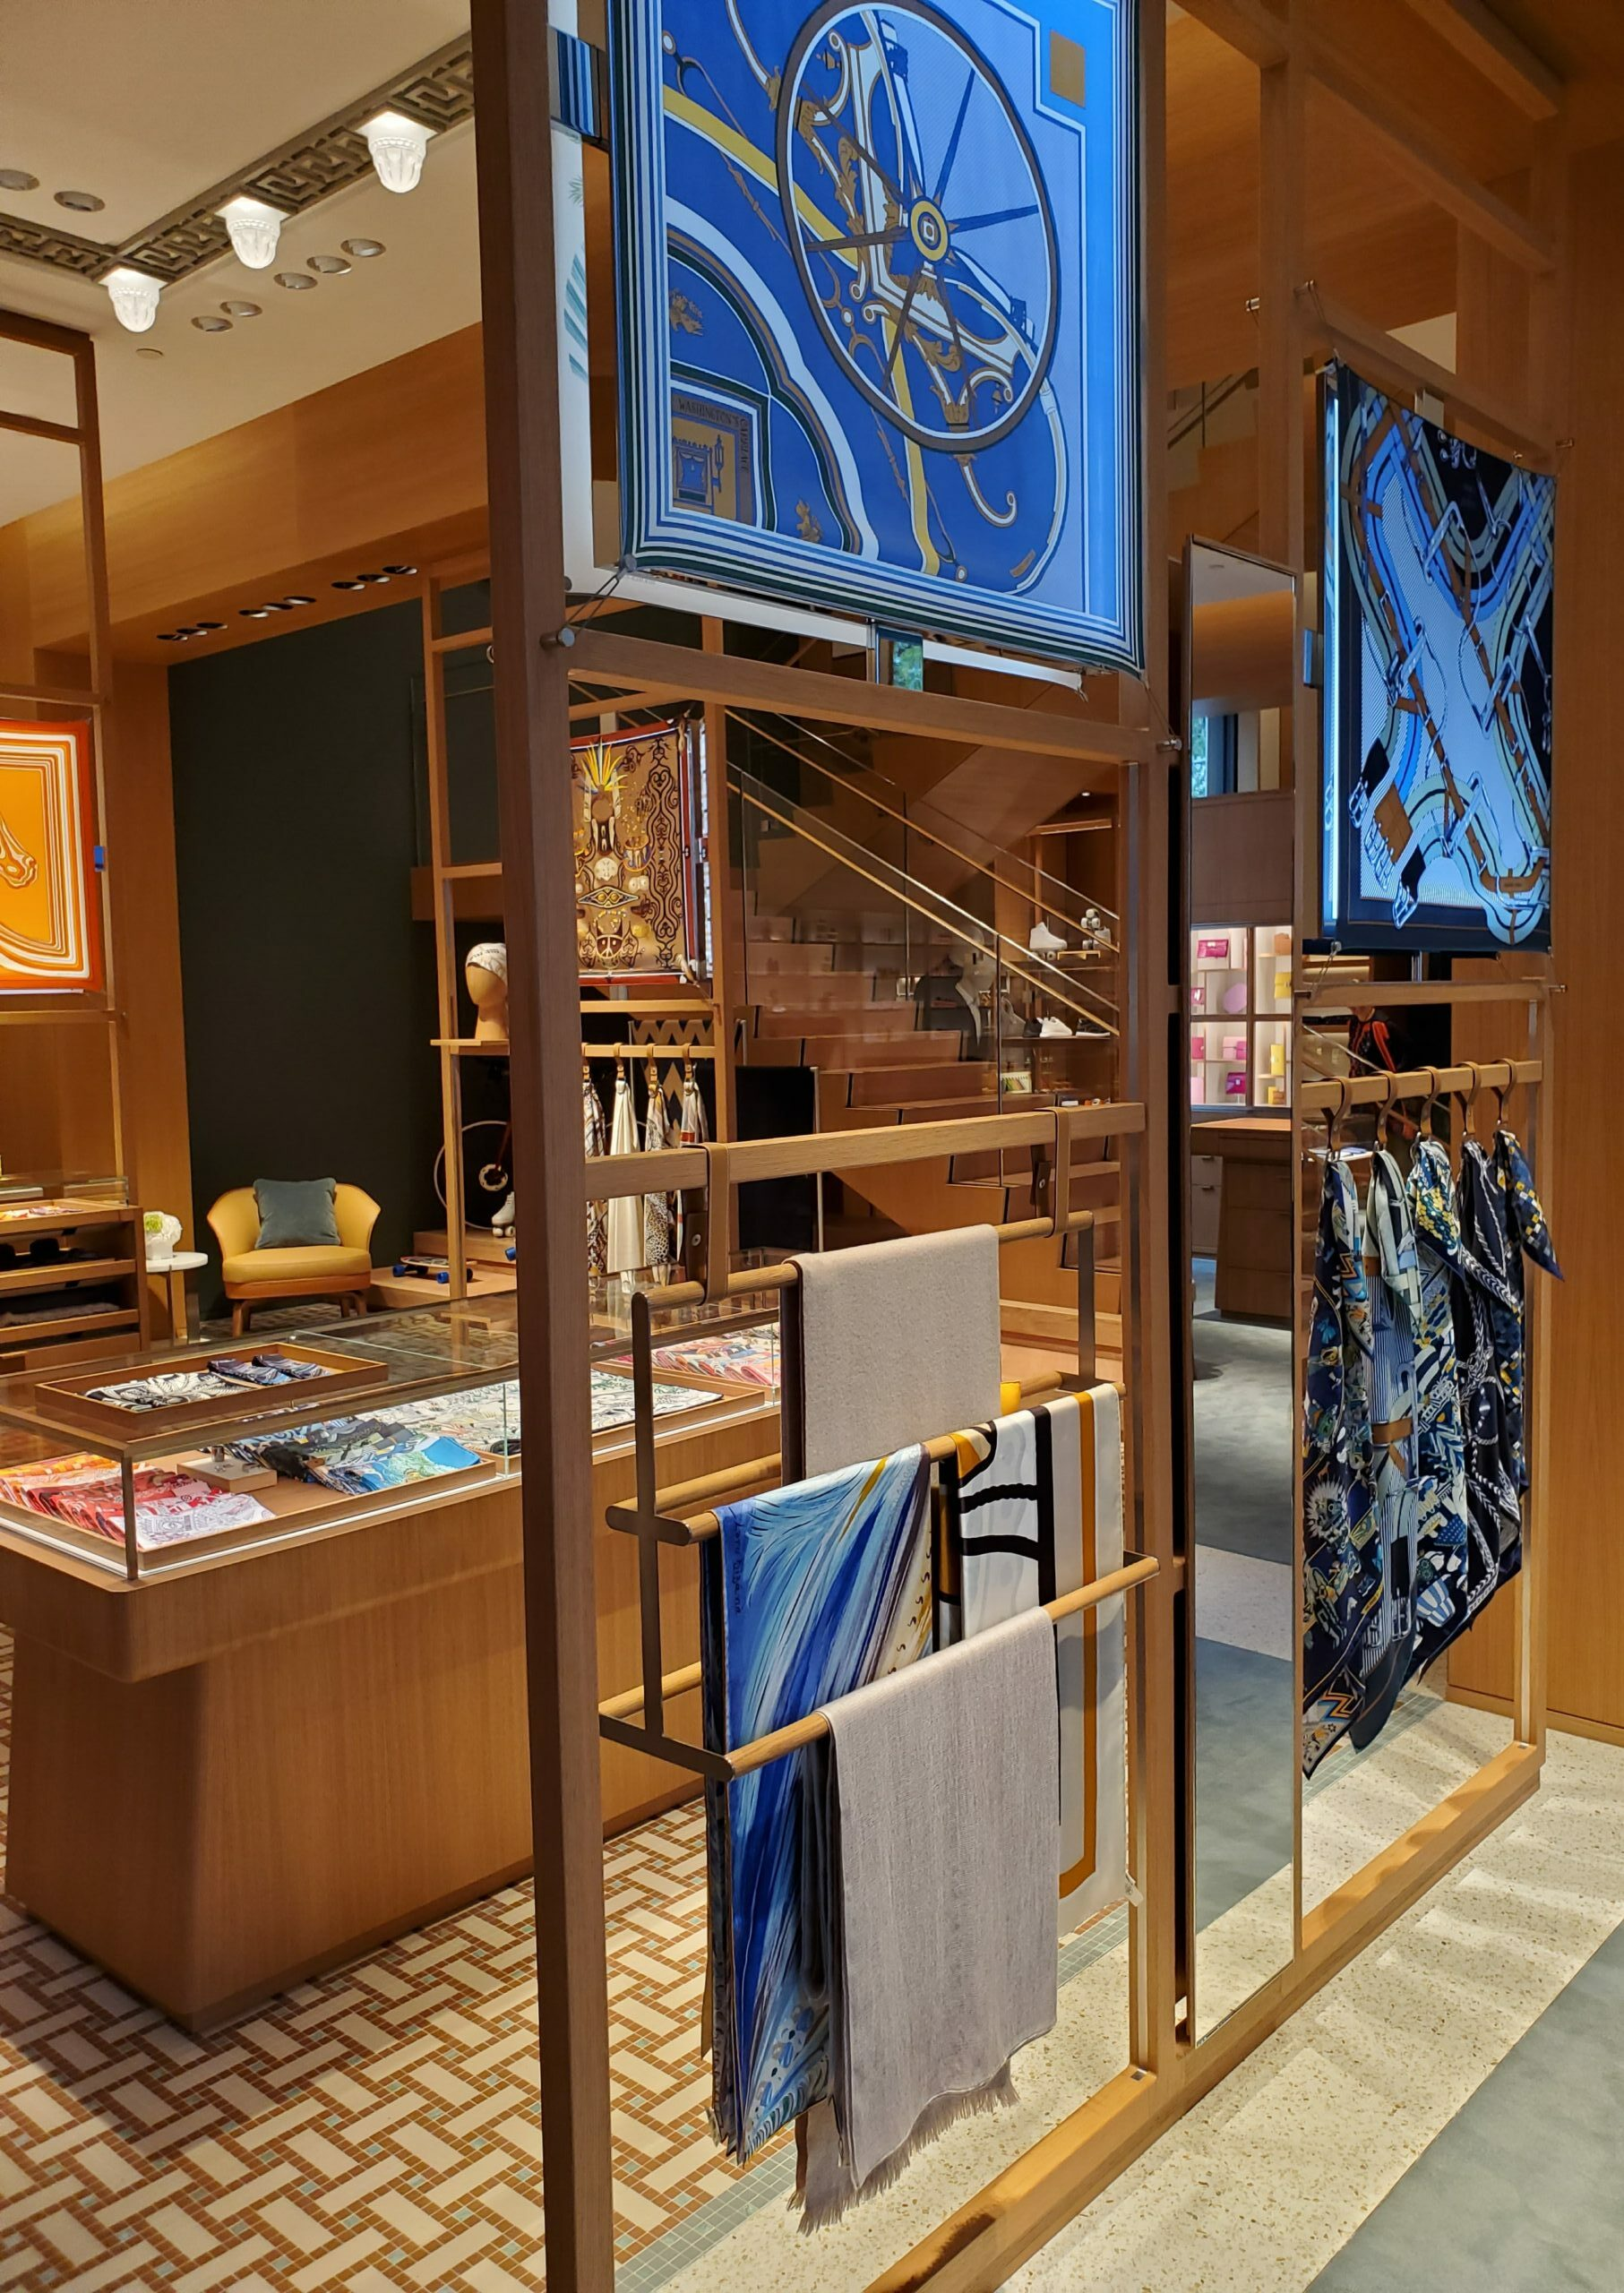 hermes, luxury zone, flagship, helen siwak, coleman pete, luxury, ecoluxluv, folioyvr, vancouver, vancity, yvr, bc